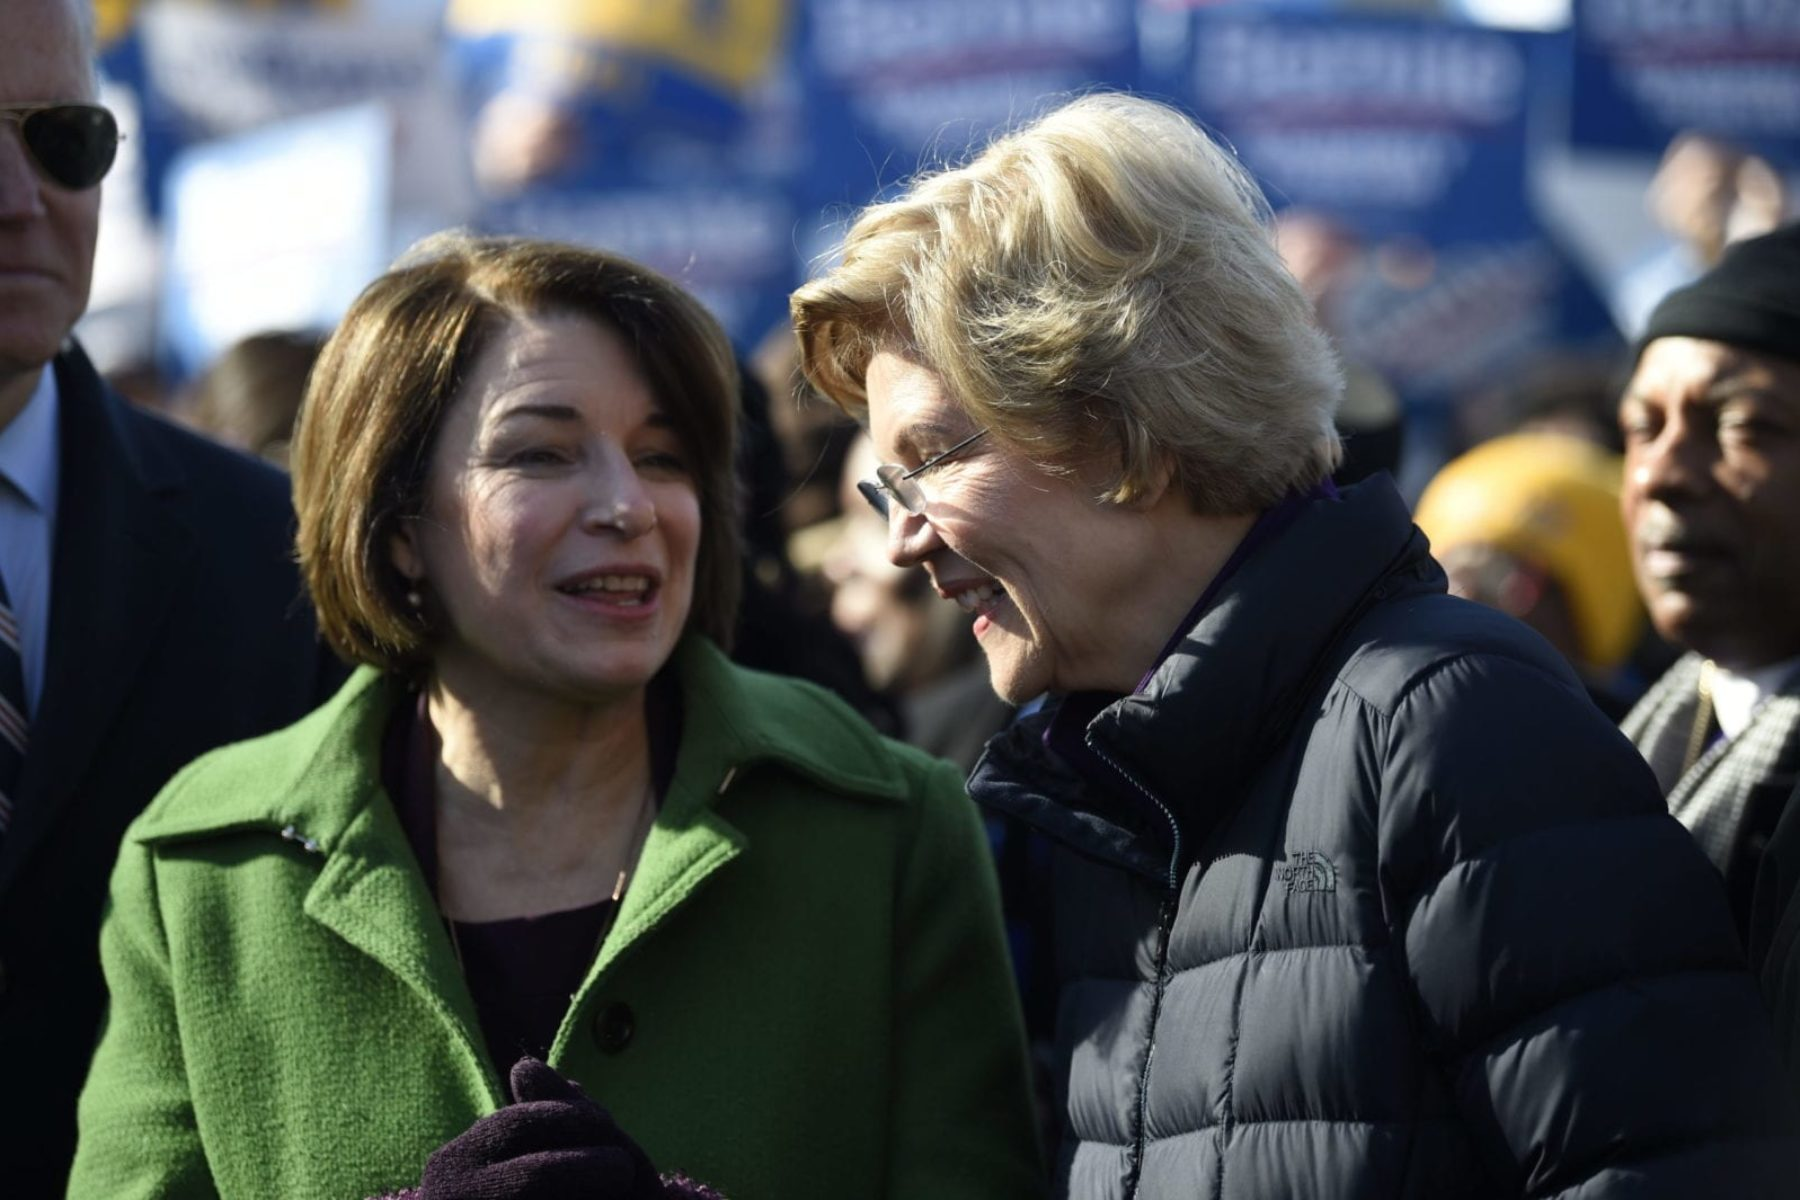 Sens. Amy Klobuchar and Elizabeth Warren at the Martin Luther King Jr. Day march in Columbia, S.C, in January 2020.